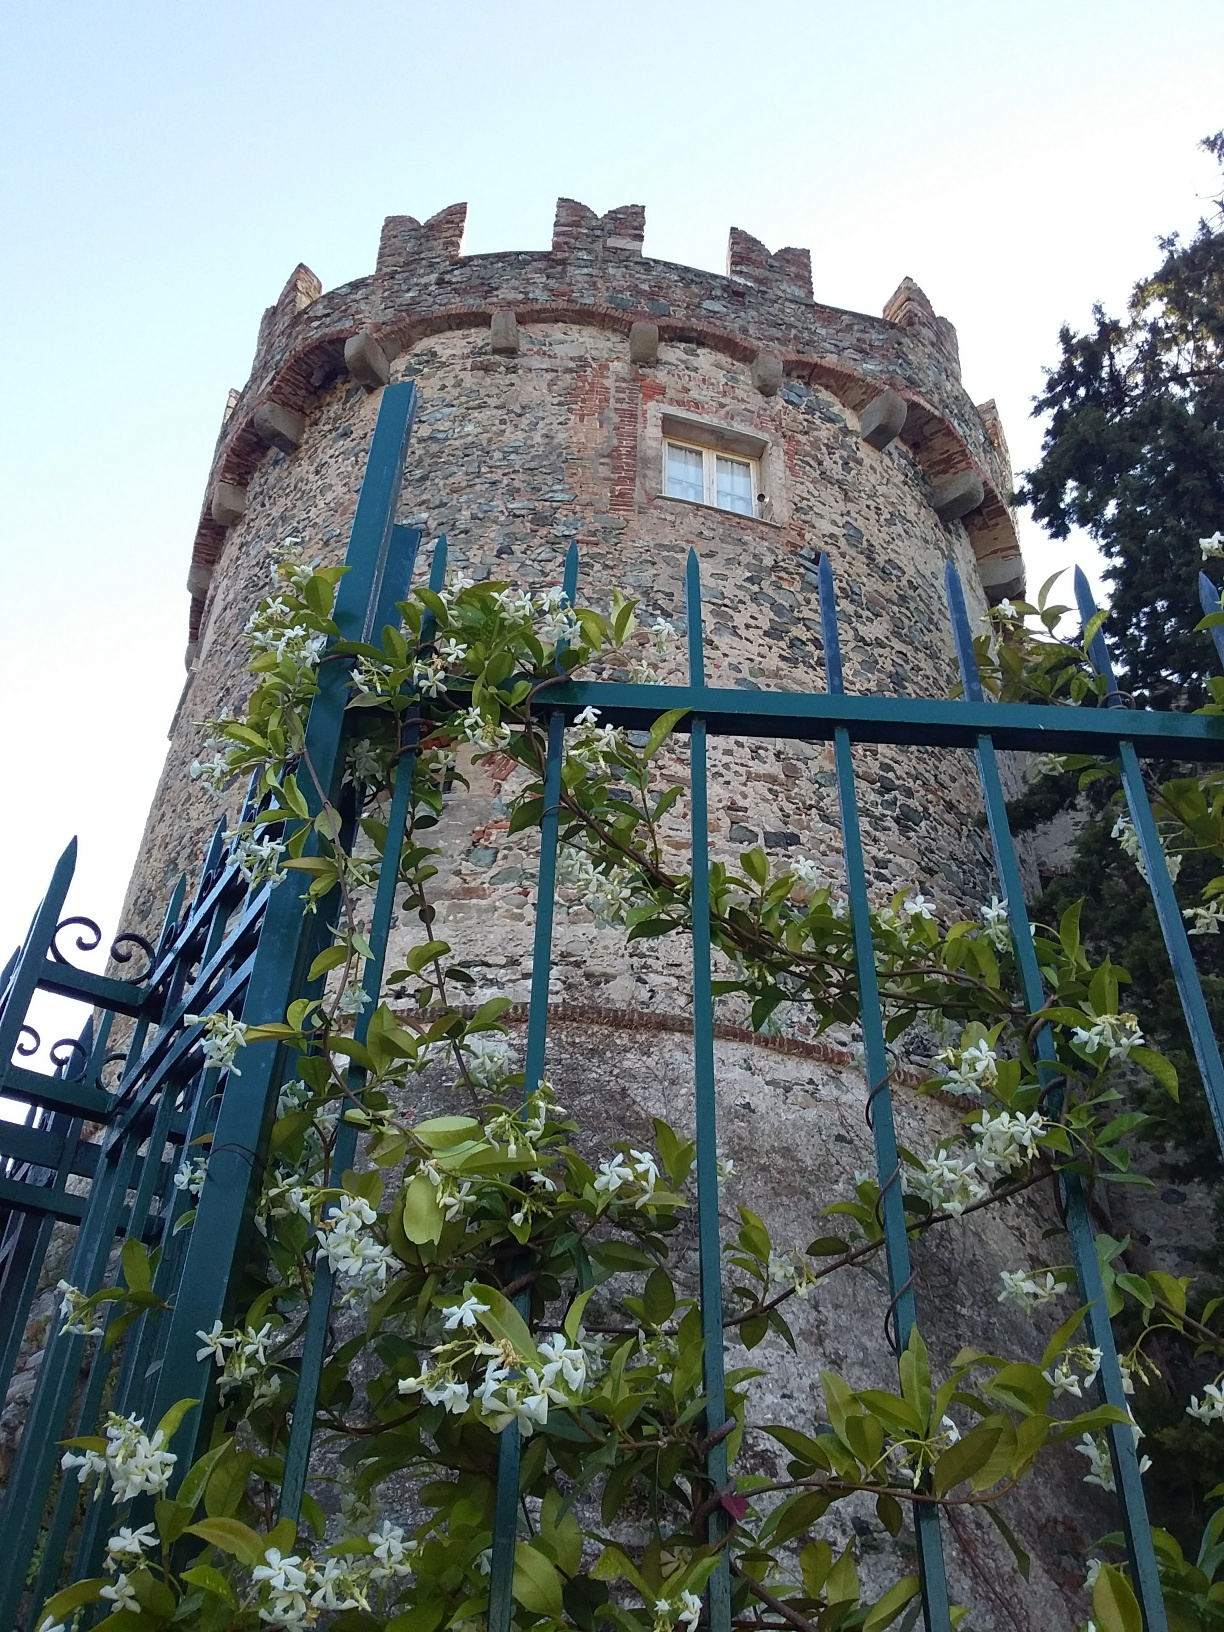 The castle (privately owned, closed to visitors) is just a short hike up from town.